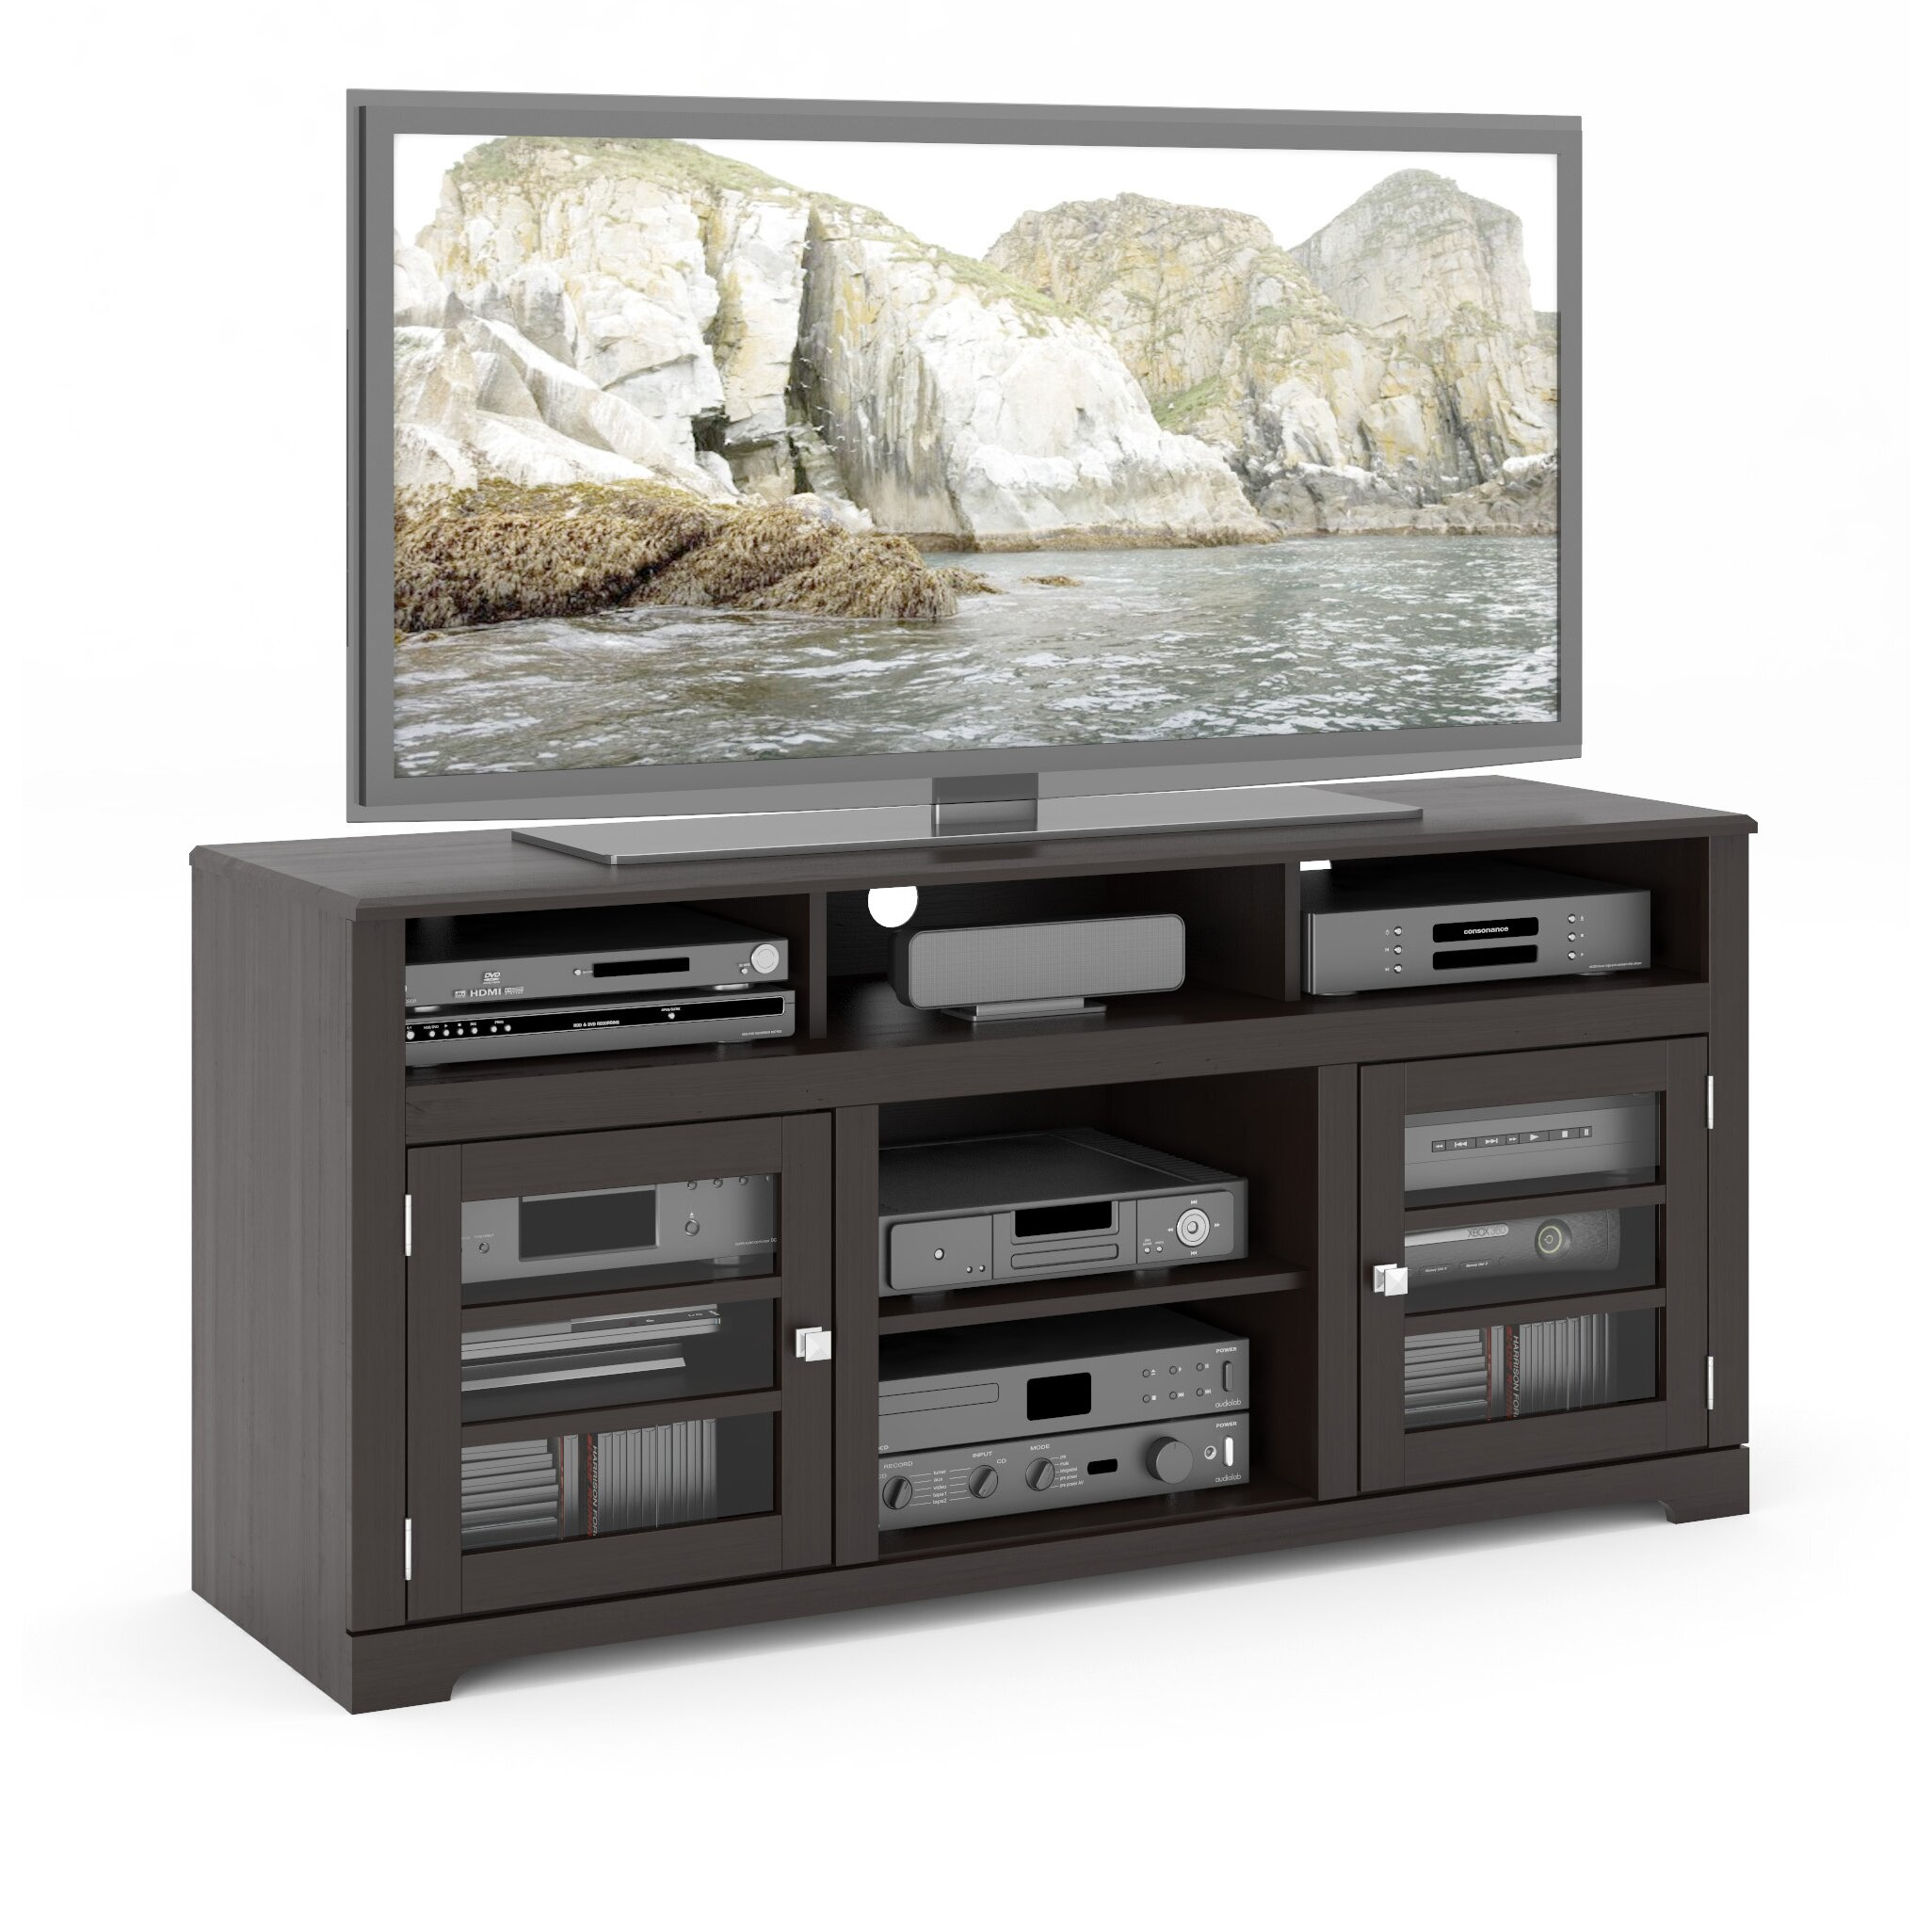 Sonax Furniture: DCOR Design West Lake TV Stand & Reviews